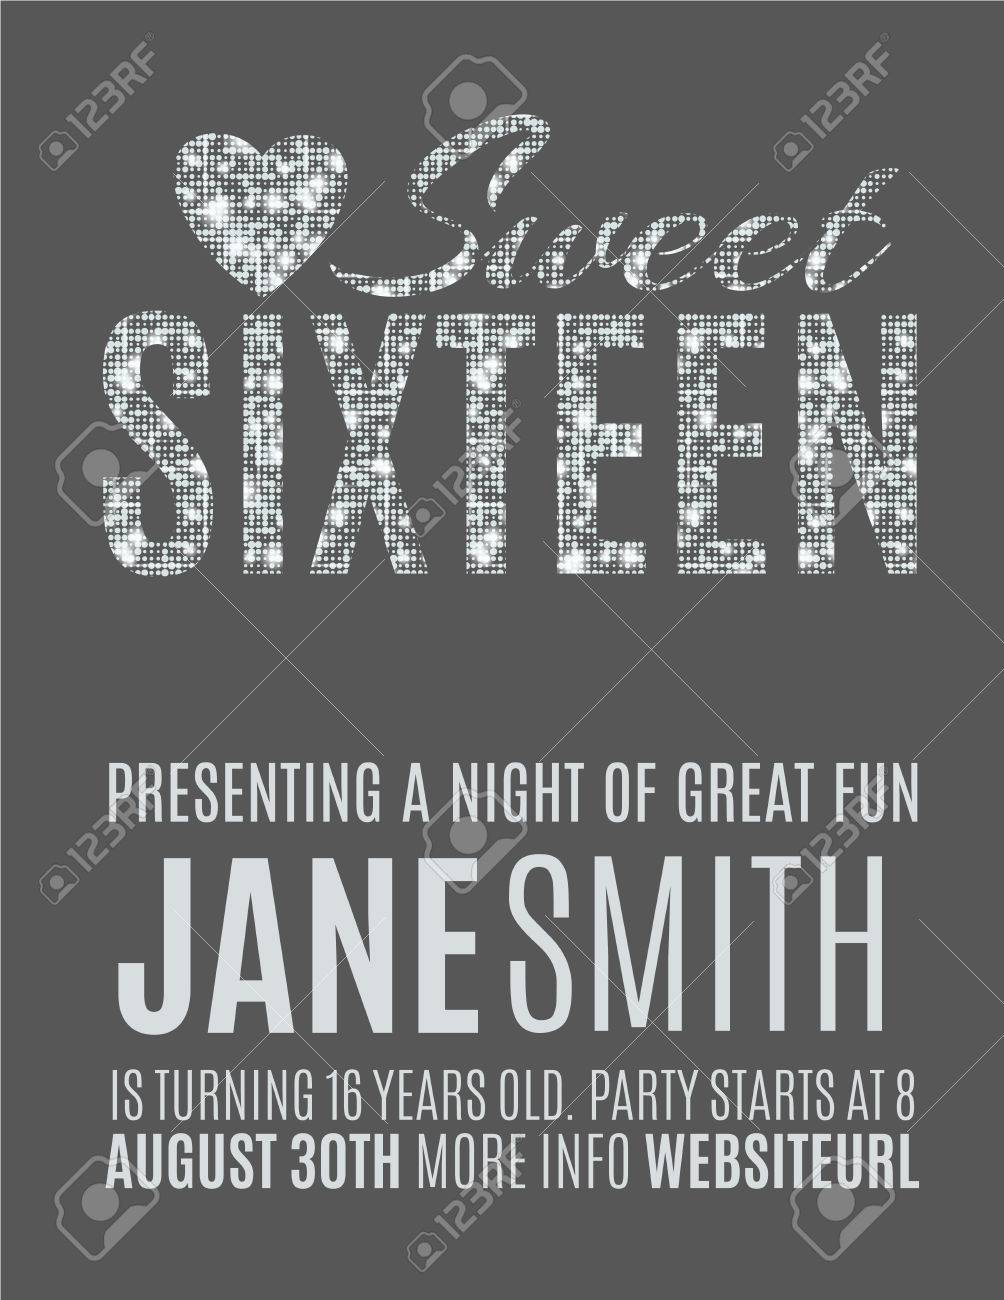 Sweet Sixteen Glitter Party Invitation Flyer Template Design Royalty ...